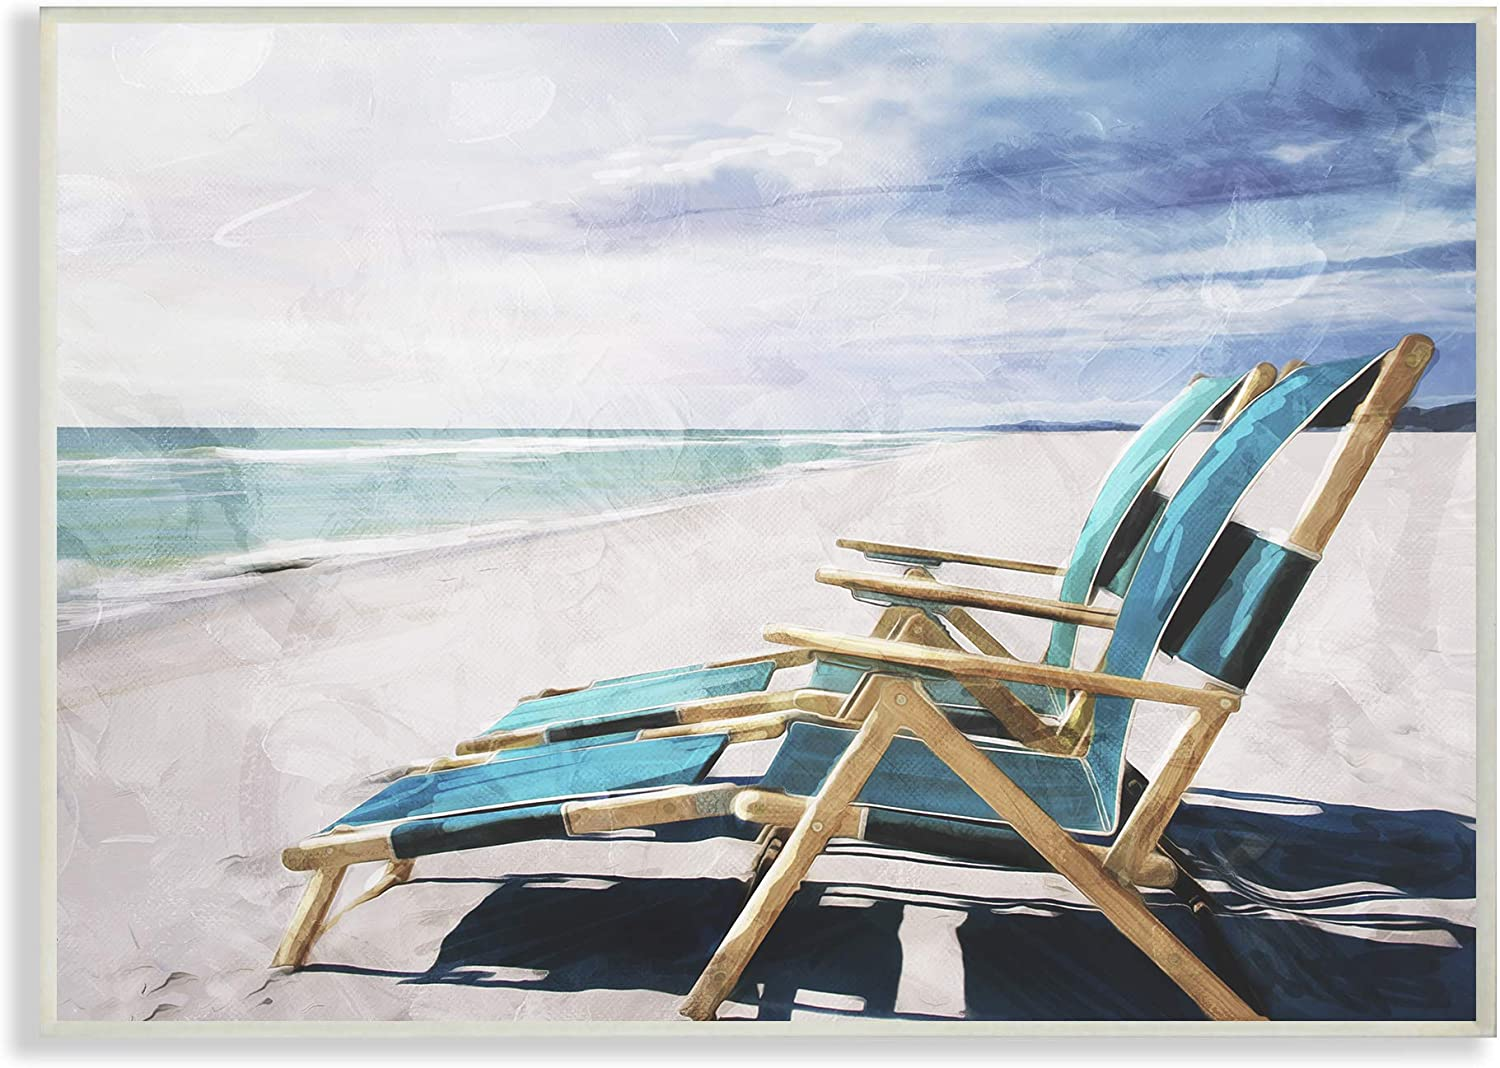 The Stupell Home Decor Set of Teal bluee Chairs on The Beach Wall Plaque Art, 13 X 19, Multi-color